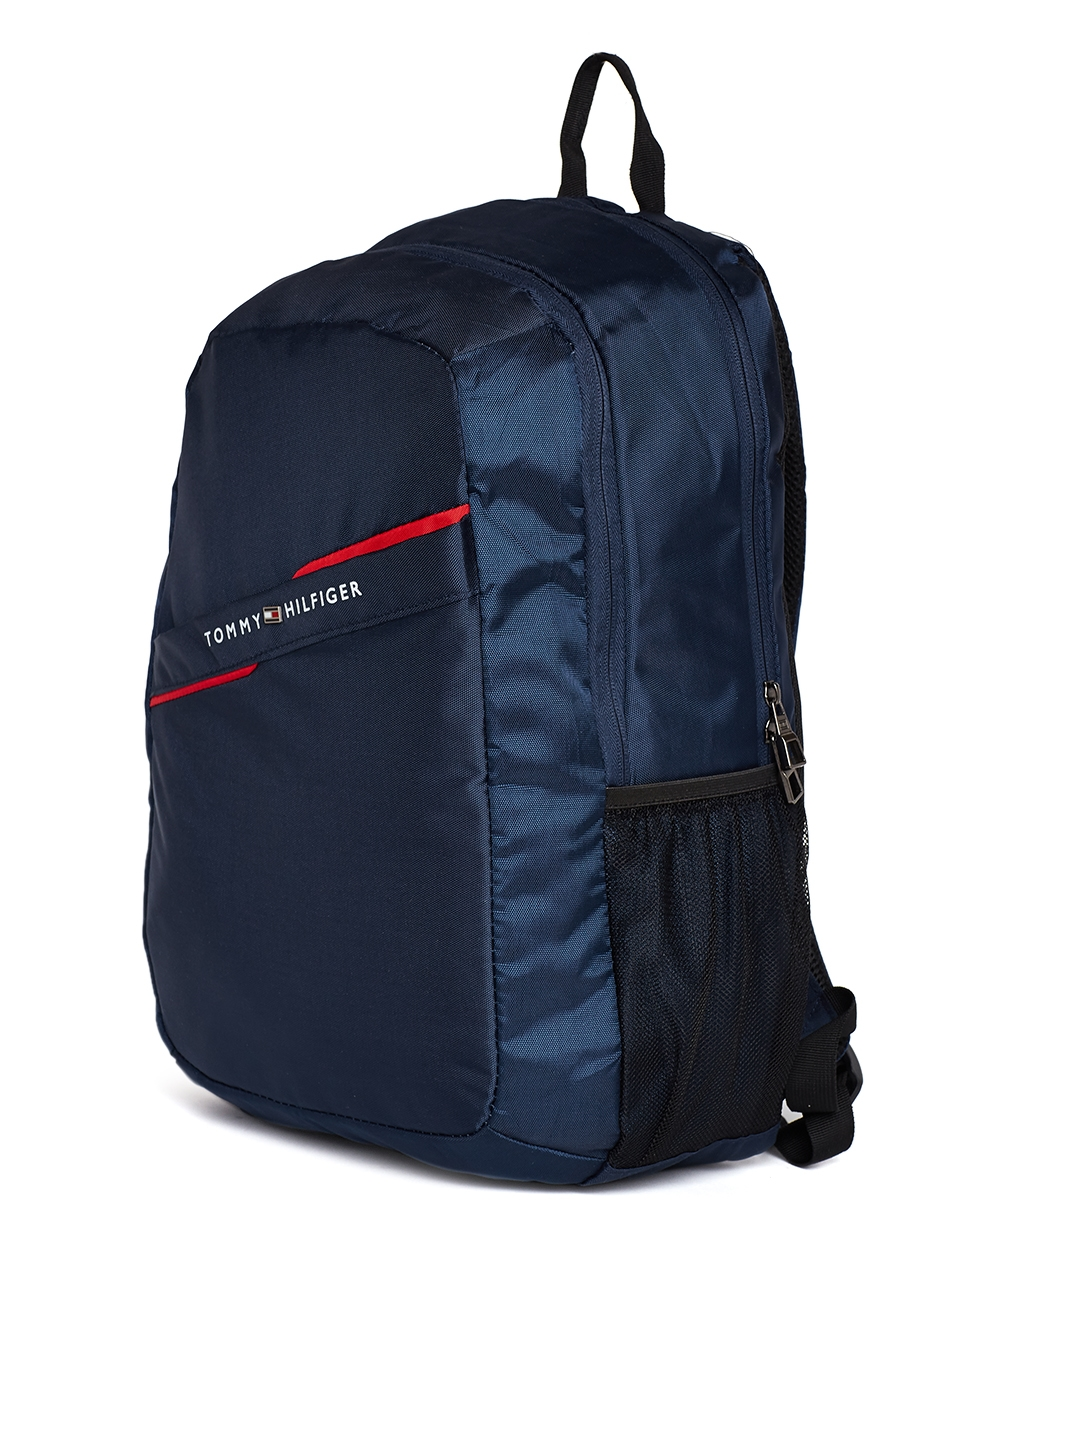 6dcf0e64669 Buy Tommy Hilfiger Unisex Navy Blue Solid Laptop Backpack ...